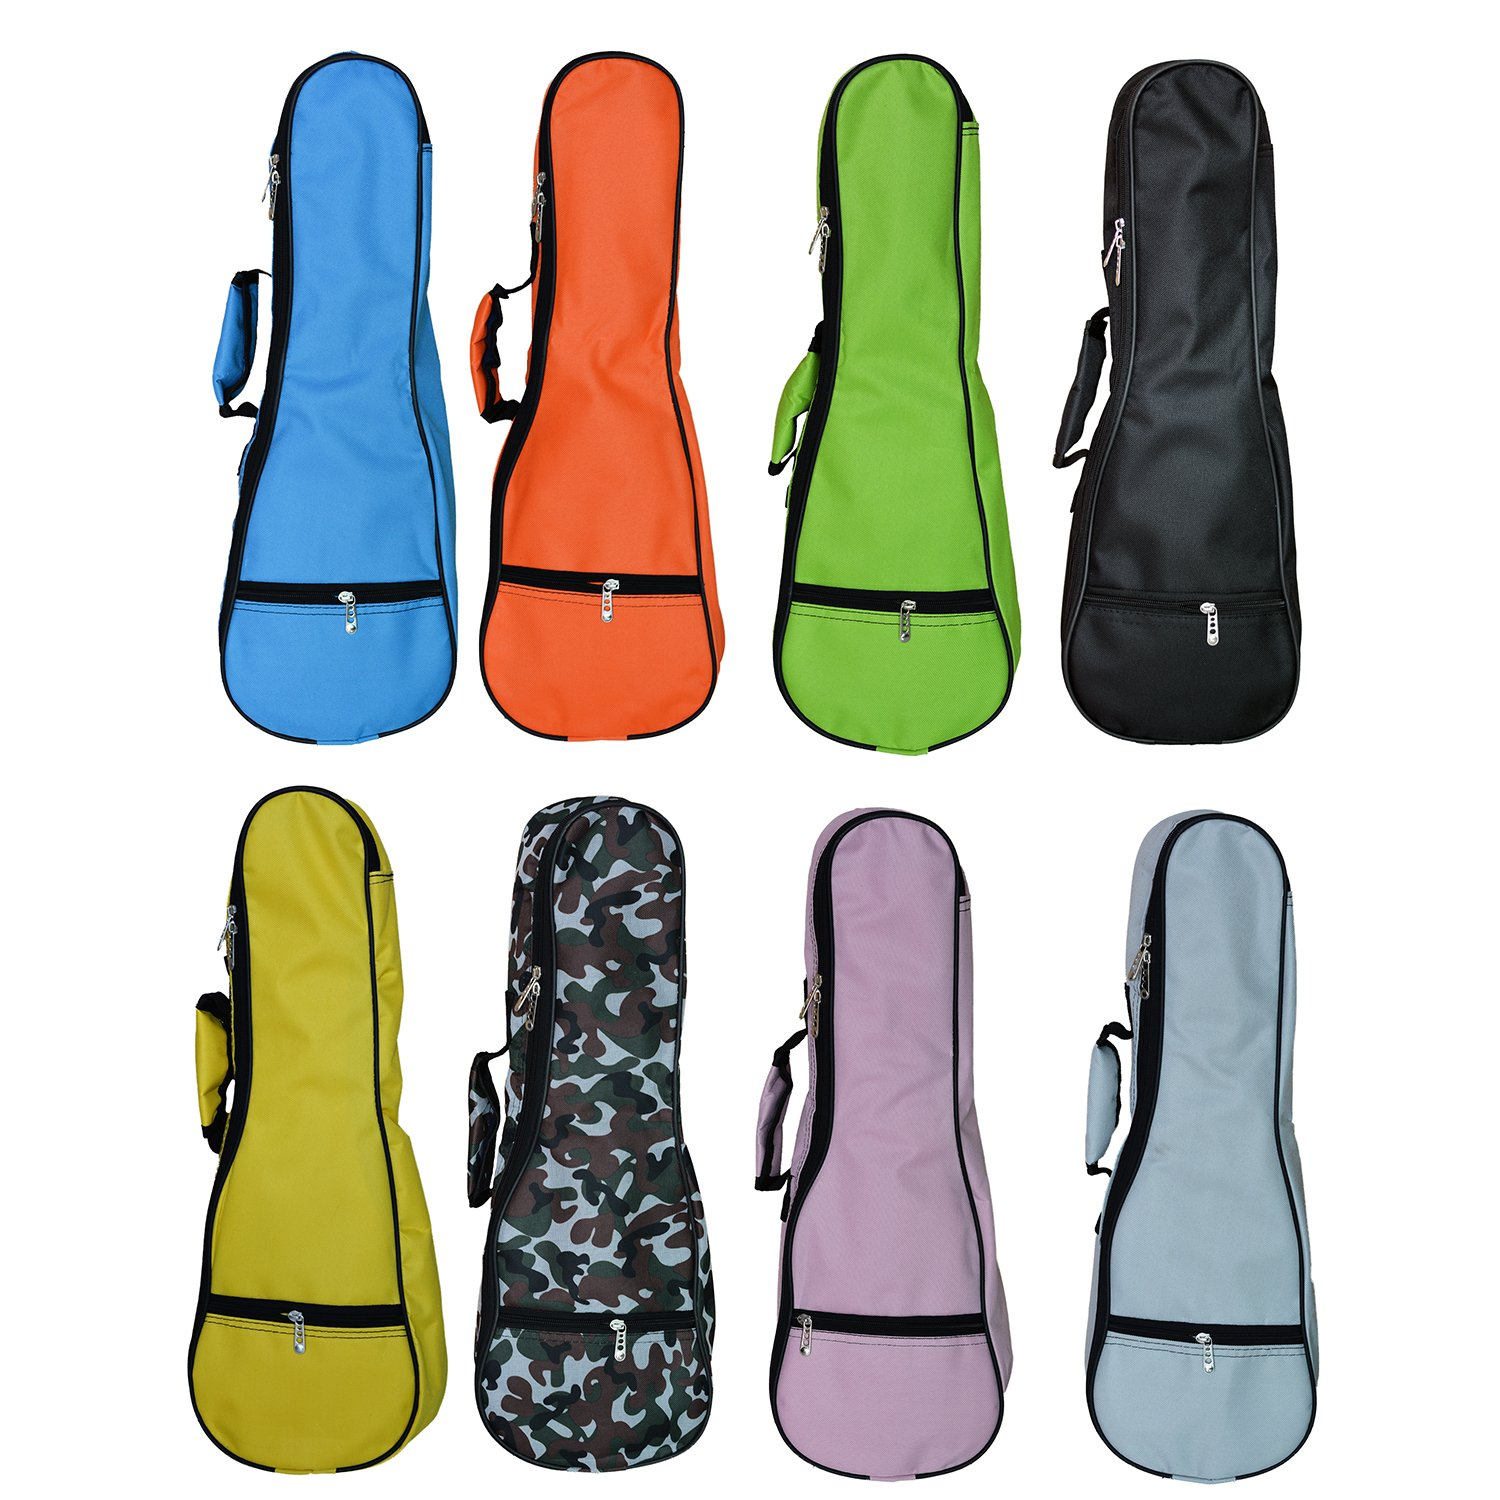 ZEALUX Colourful Adjustable Shoulder Strap 5MM Sponge Fill Ukulele Case Bag & Uke Case